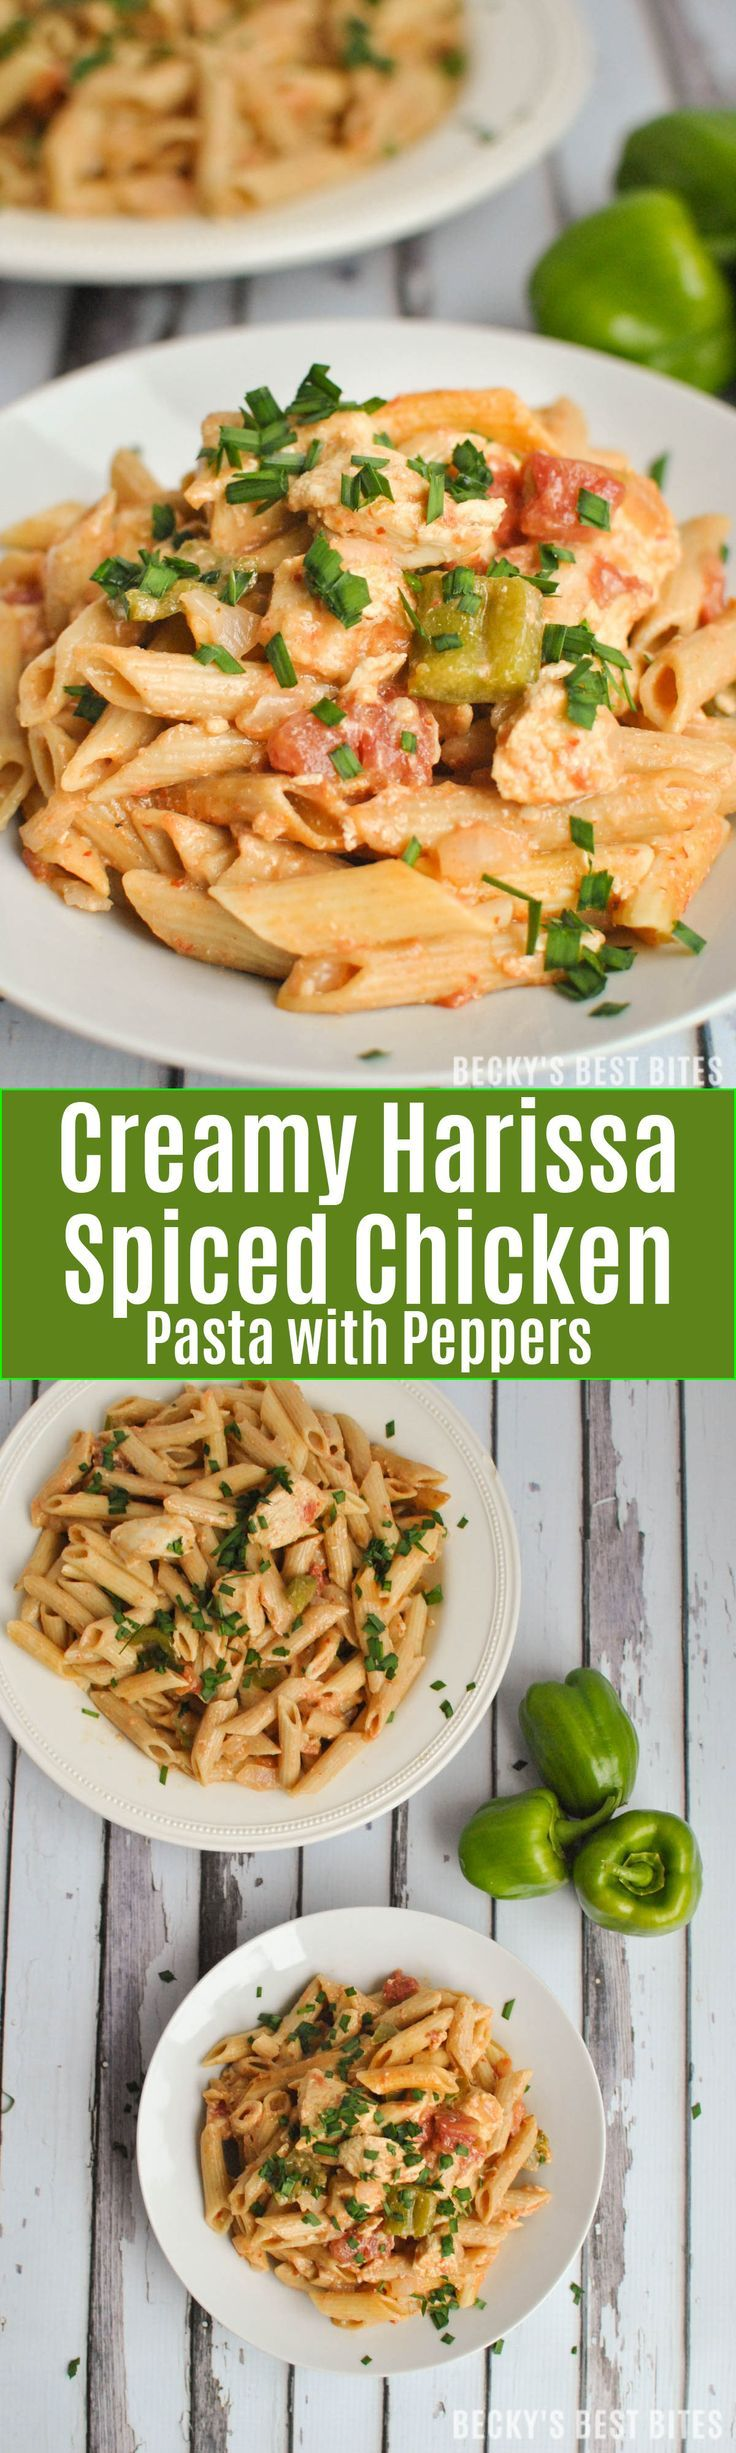 Creamy Harissa Spiced Chicken Pasta with Peppers is a healthy dinner recipe perfect for any weeknight meal. It is bursting with the flavors of a special hot sauce made with vegetables and chiles seasoned with coriander, caraway, and garlic; and tamed by the creaminess of greek yogurt. | beckysbestbites.com